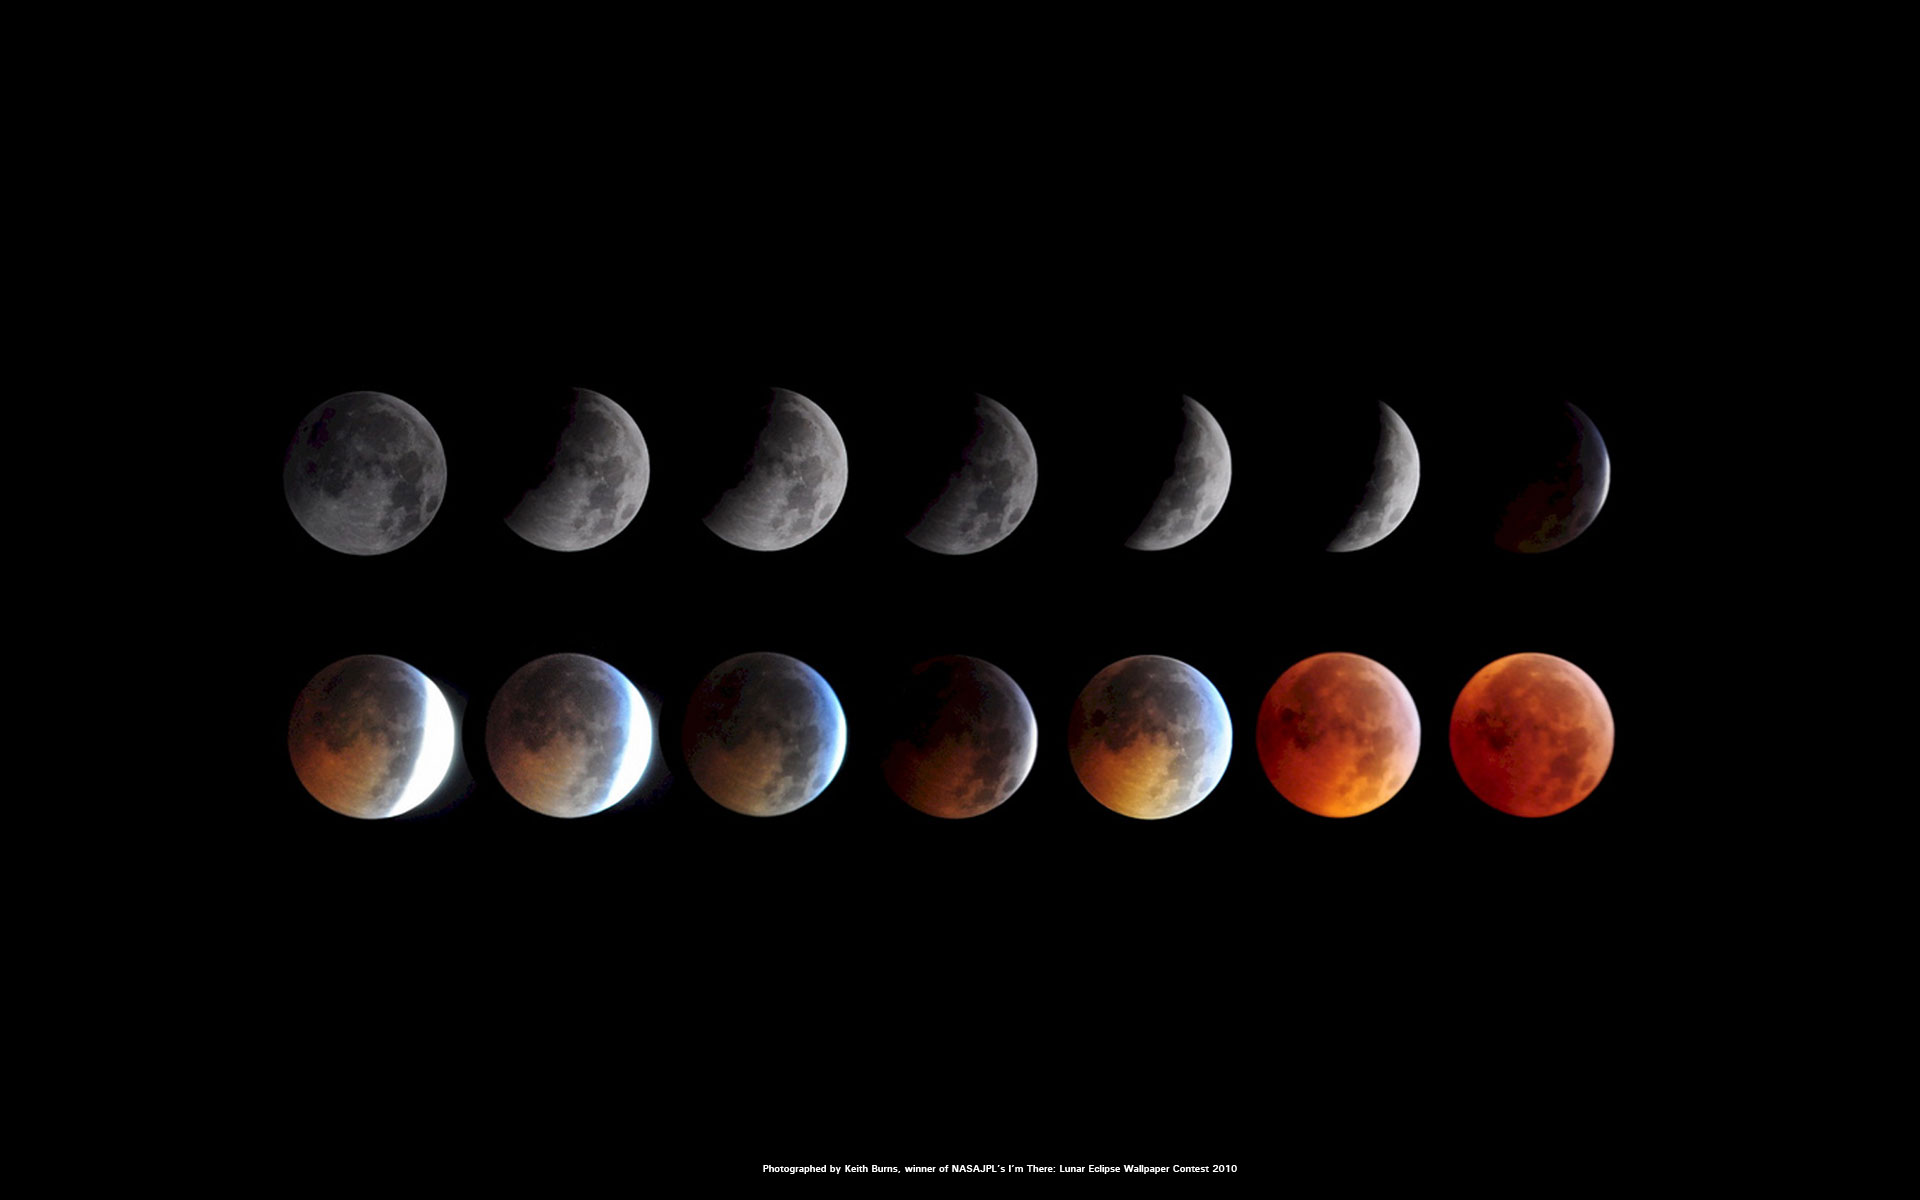 Total Lunar Eclipse Of 2010 Space Wallpaper Nasa Wallpapers Skywatching Photos Lunar Eclipses Solar Eclipses Space